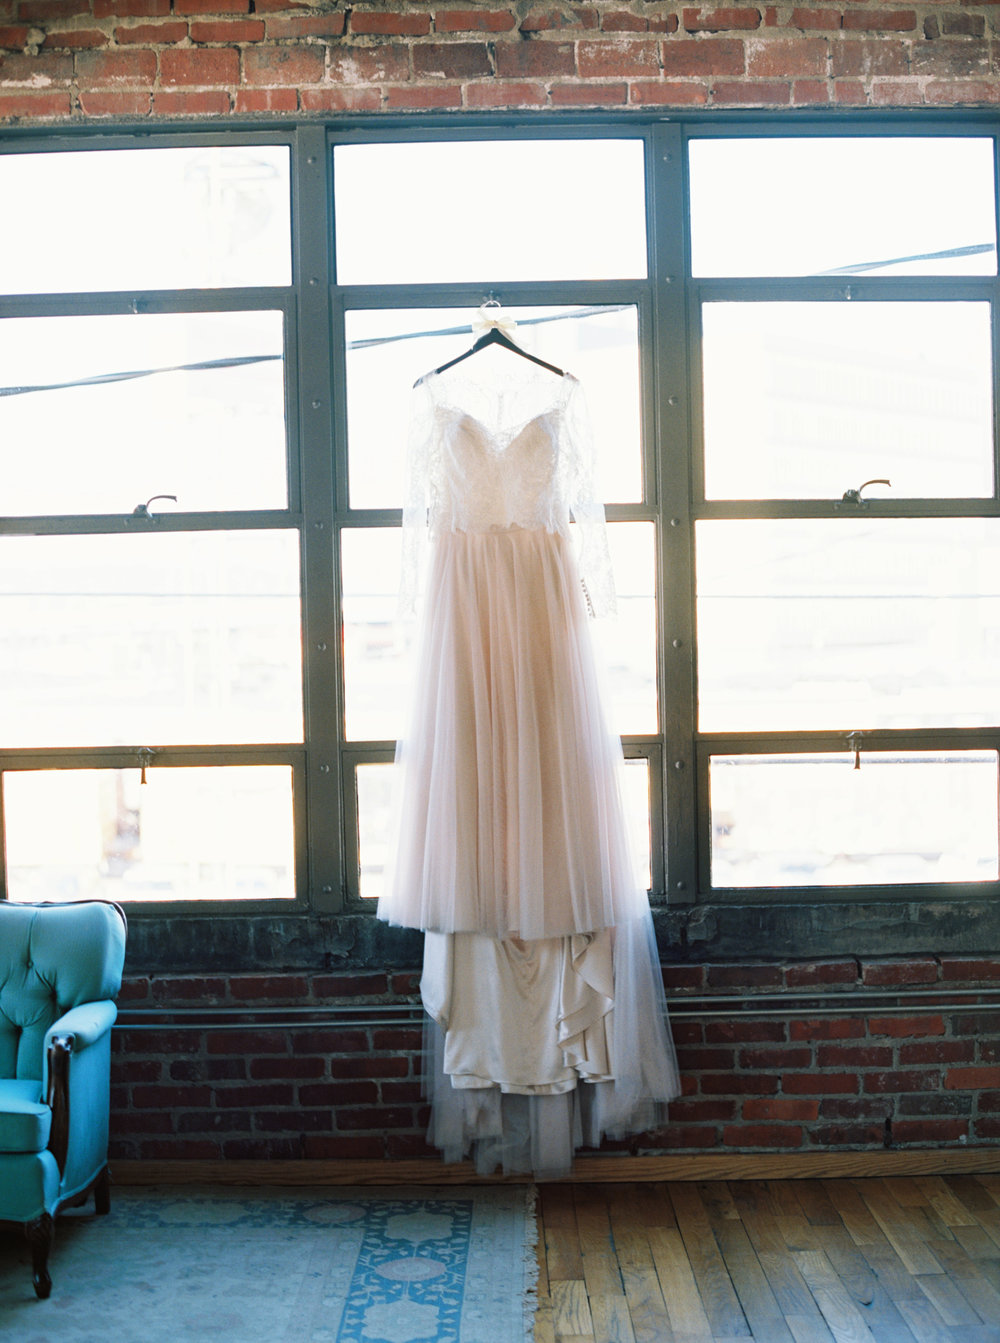 Lauren_Jeremy_Standard_Wedding_Knoxville_Abigail_Malone_Photography_FIlm-6.jpg